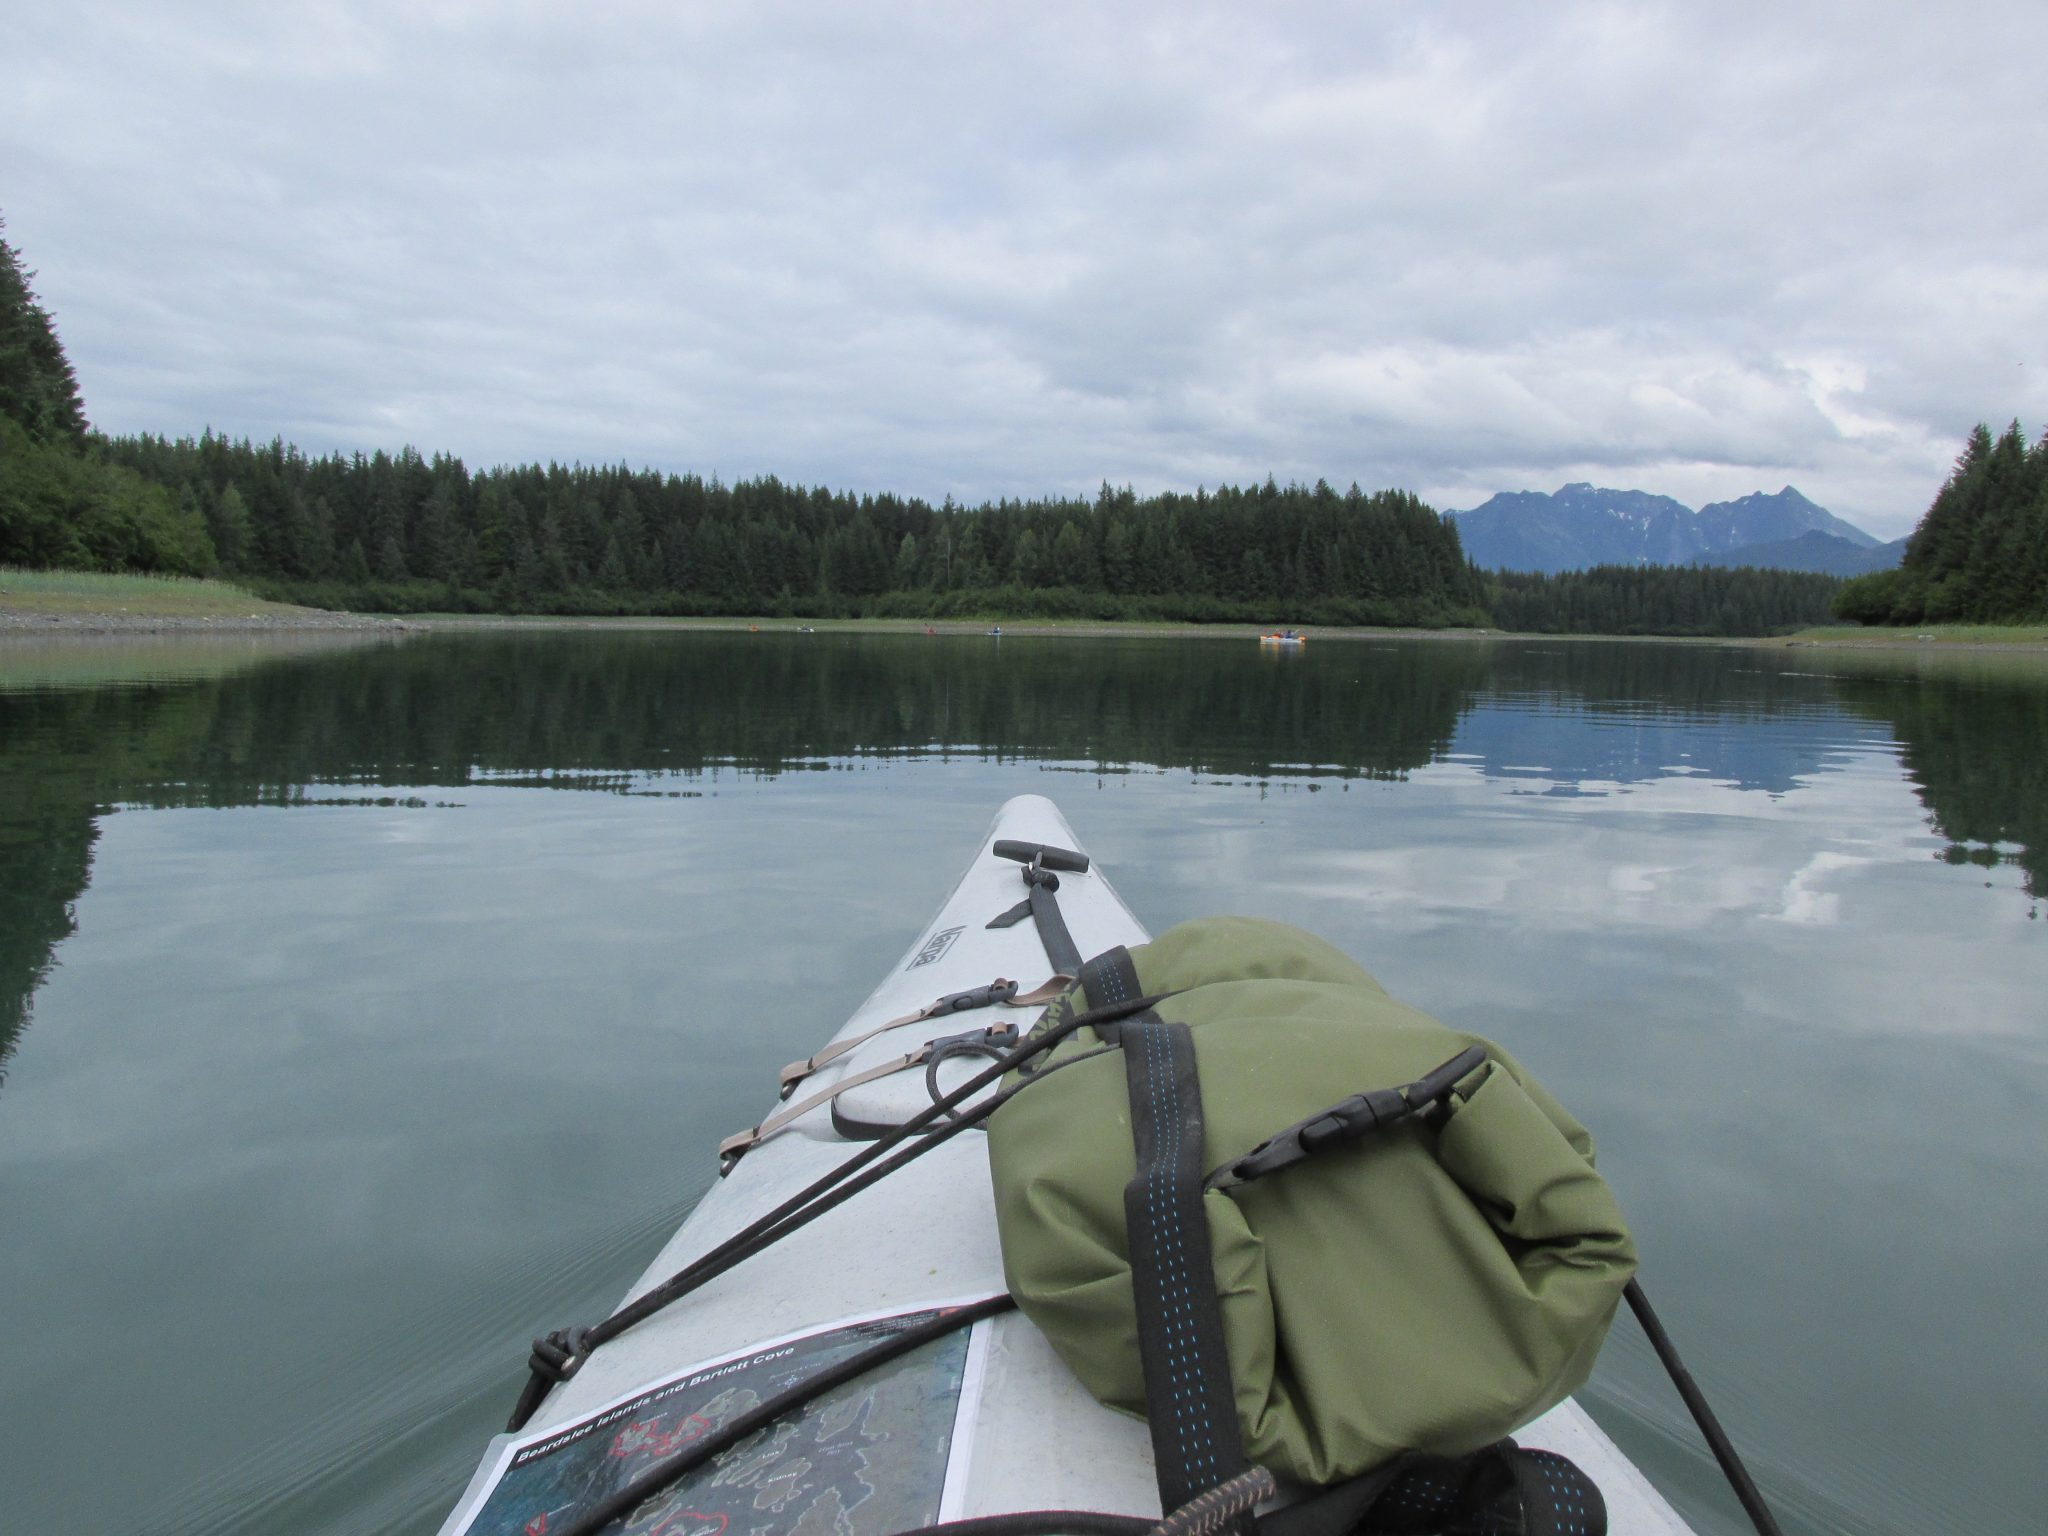 The front of a kayak with a map and dry bag tied to it. The water is calm, there are forested islands around it and some distant mountains on an overcast day